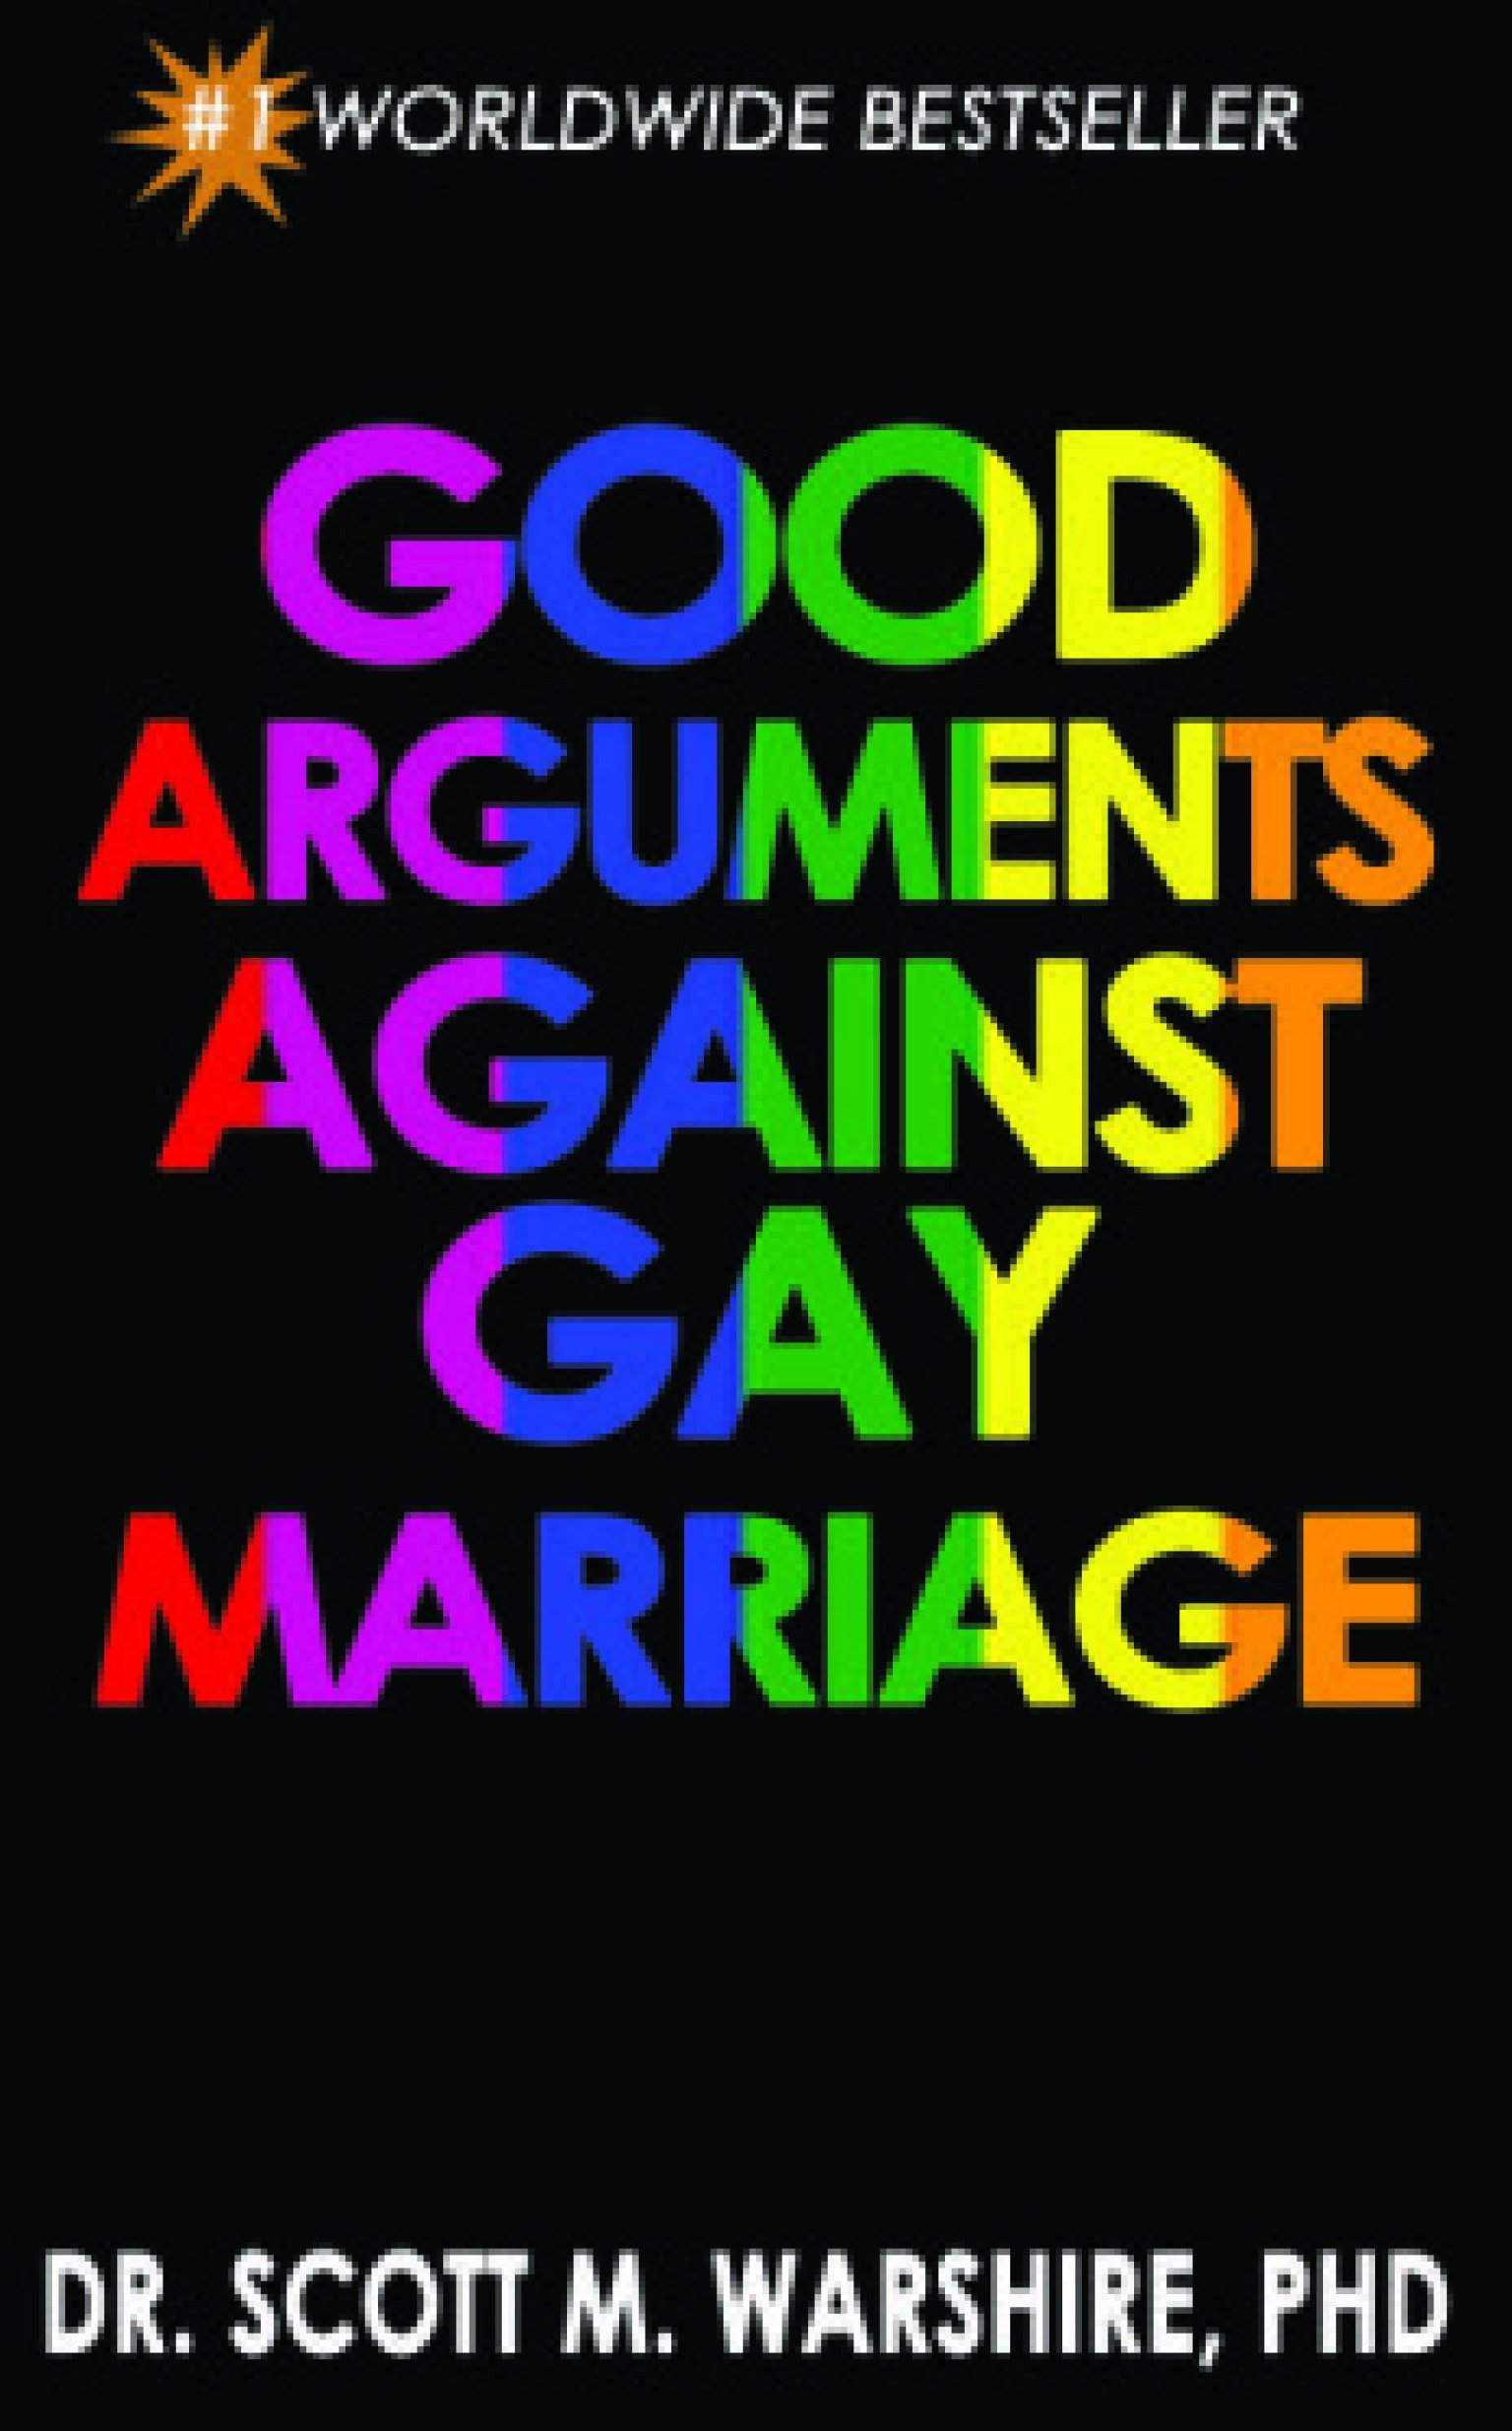 gay marriage essays against Argumentative essay on gay marriage king grammar and composition lesson 75 argumentative essay on gay marriage marriage is the ceremonial binding of two people, male and female, into one couple.